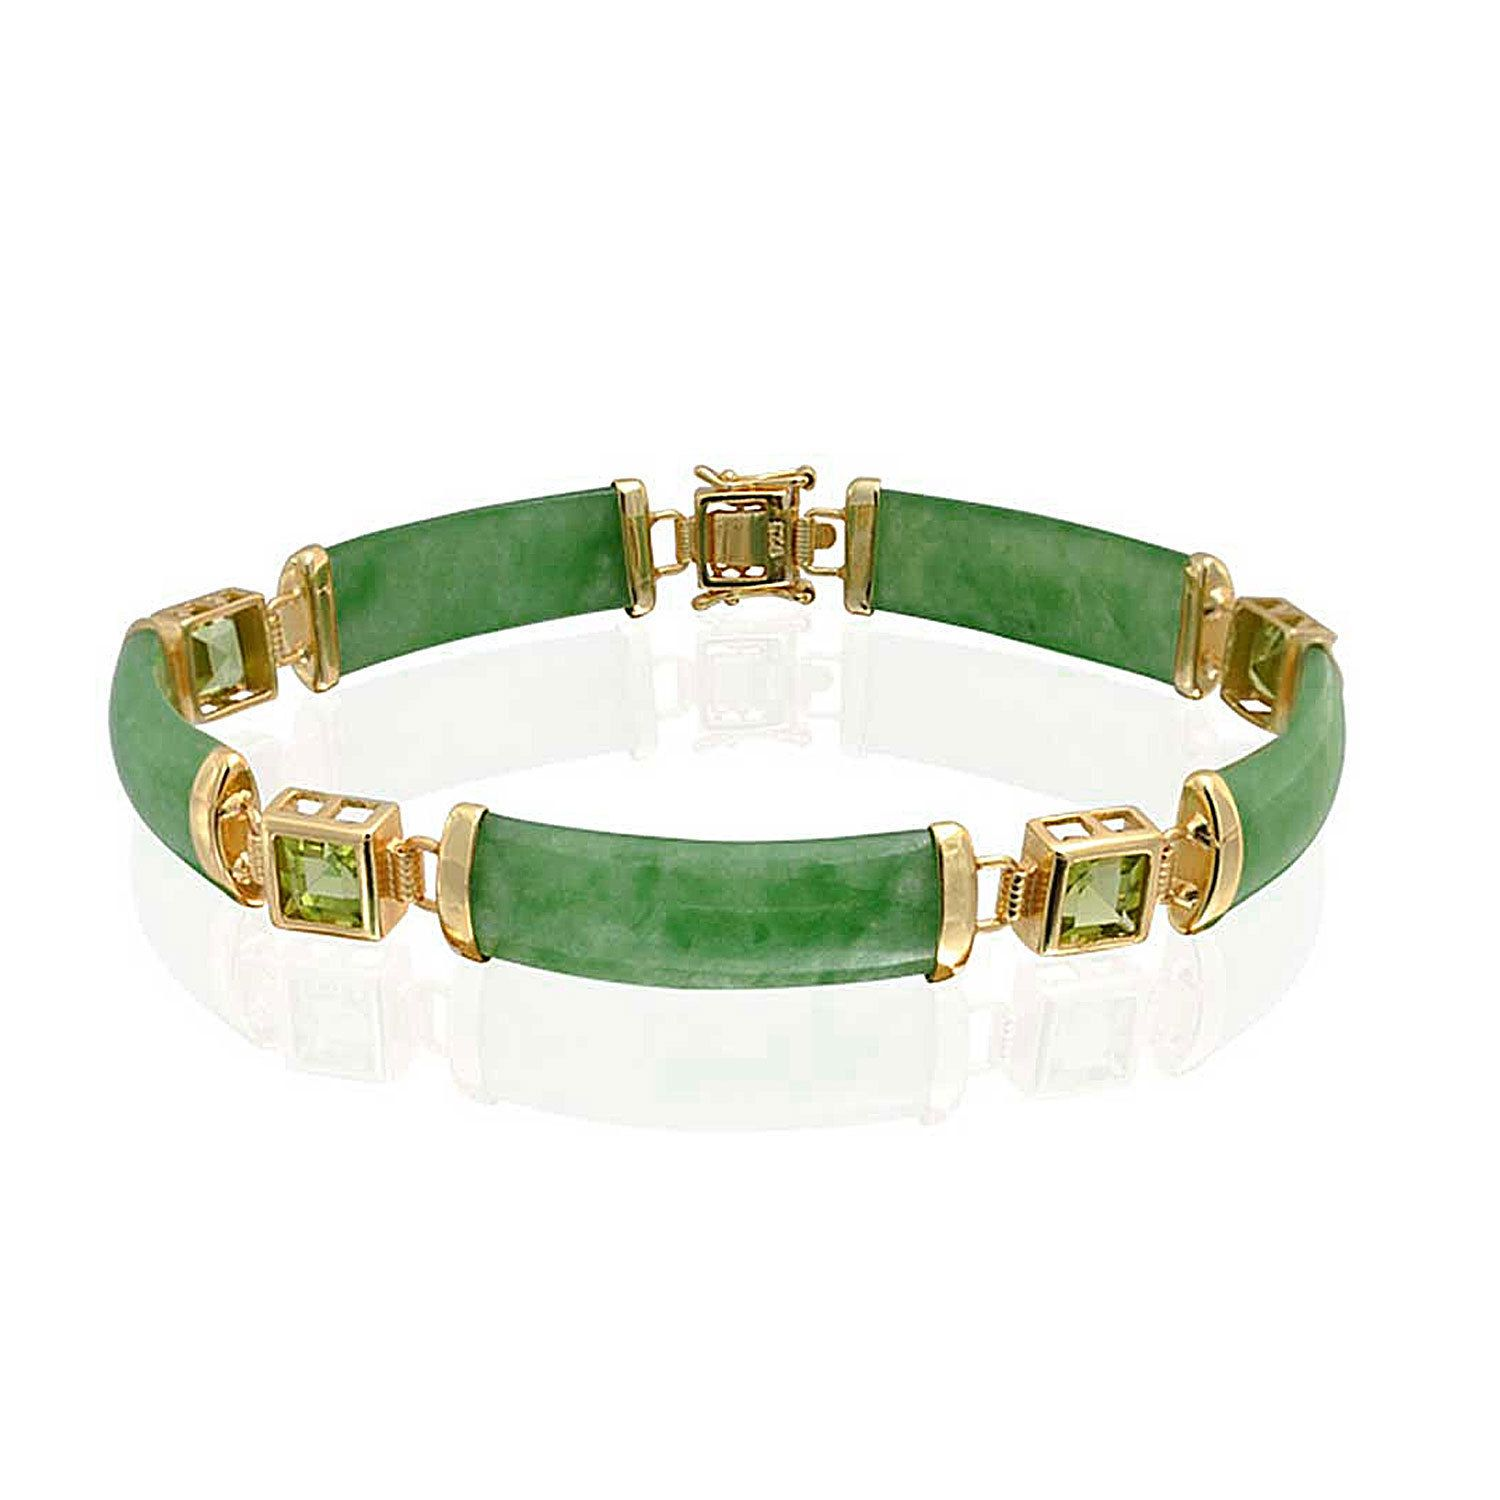 mens p nephrite bracelet spiral order green made stretch rich product jade jewelry river